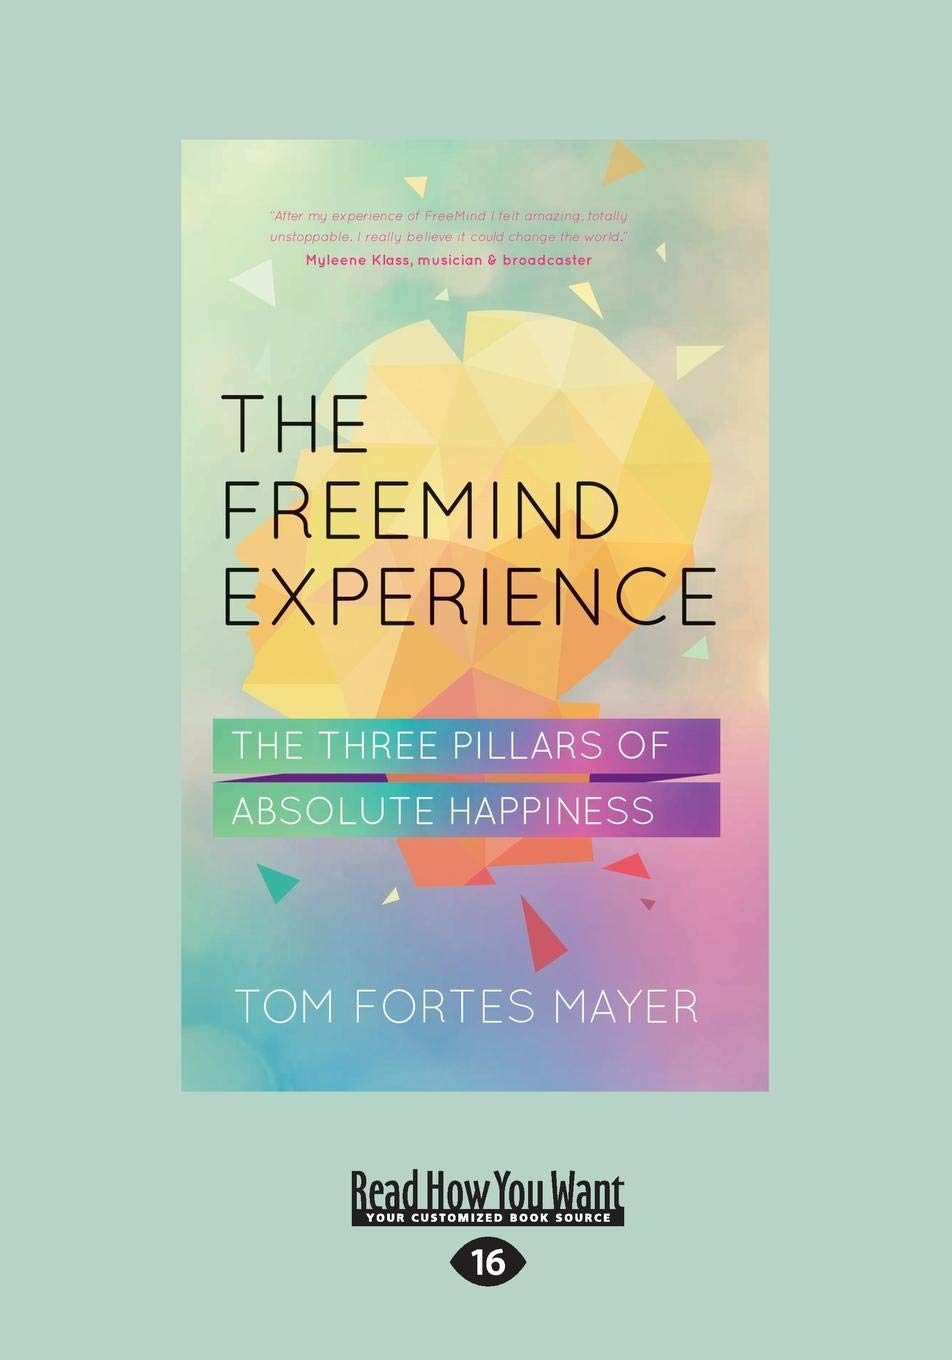 Image OfThe Freemind Experience: The Three Pillars Of Absolute Happiness